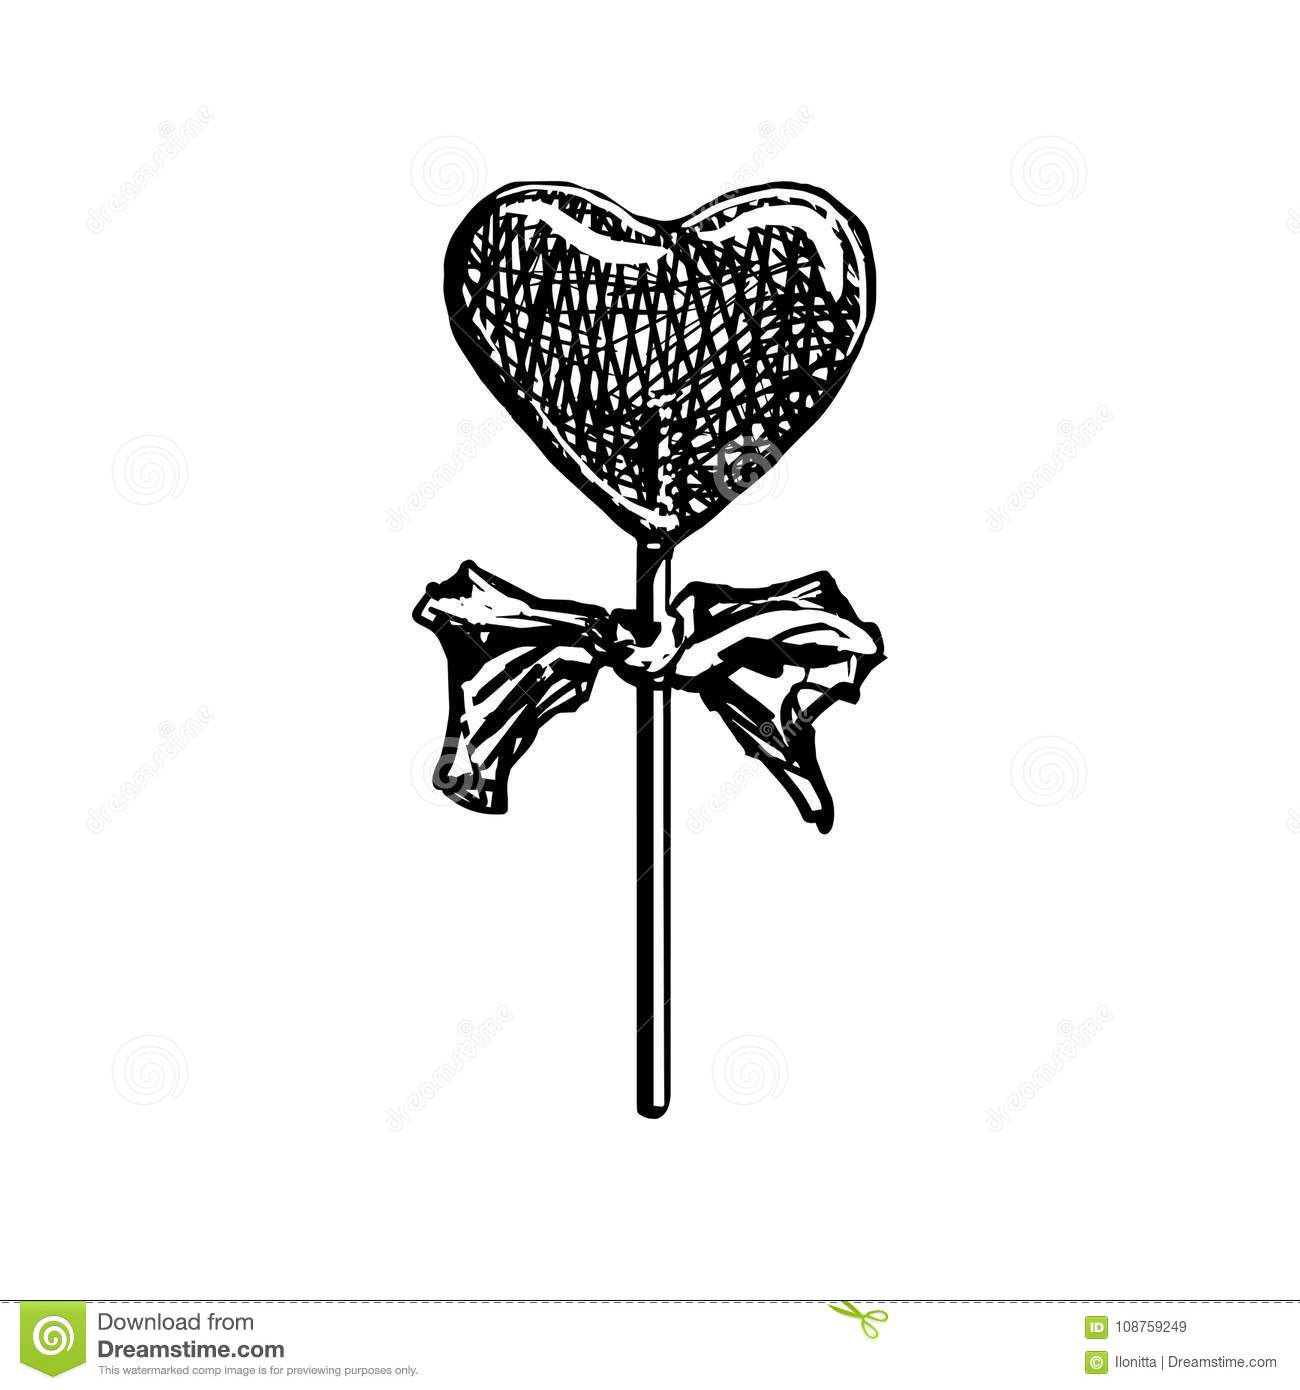 lollipop sketch heart shaped candy on stick isolated on white